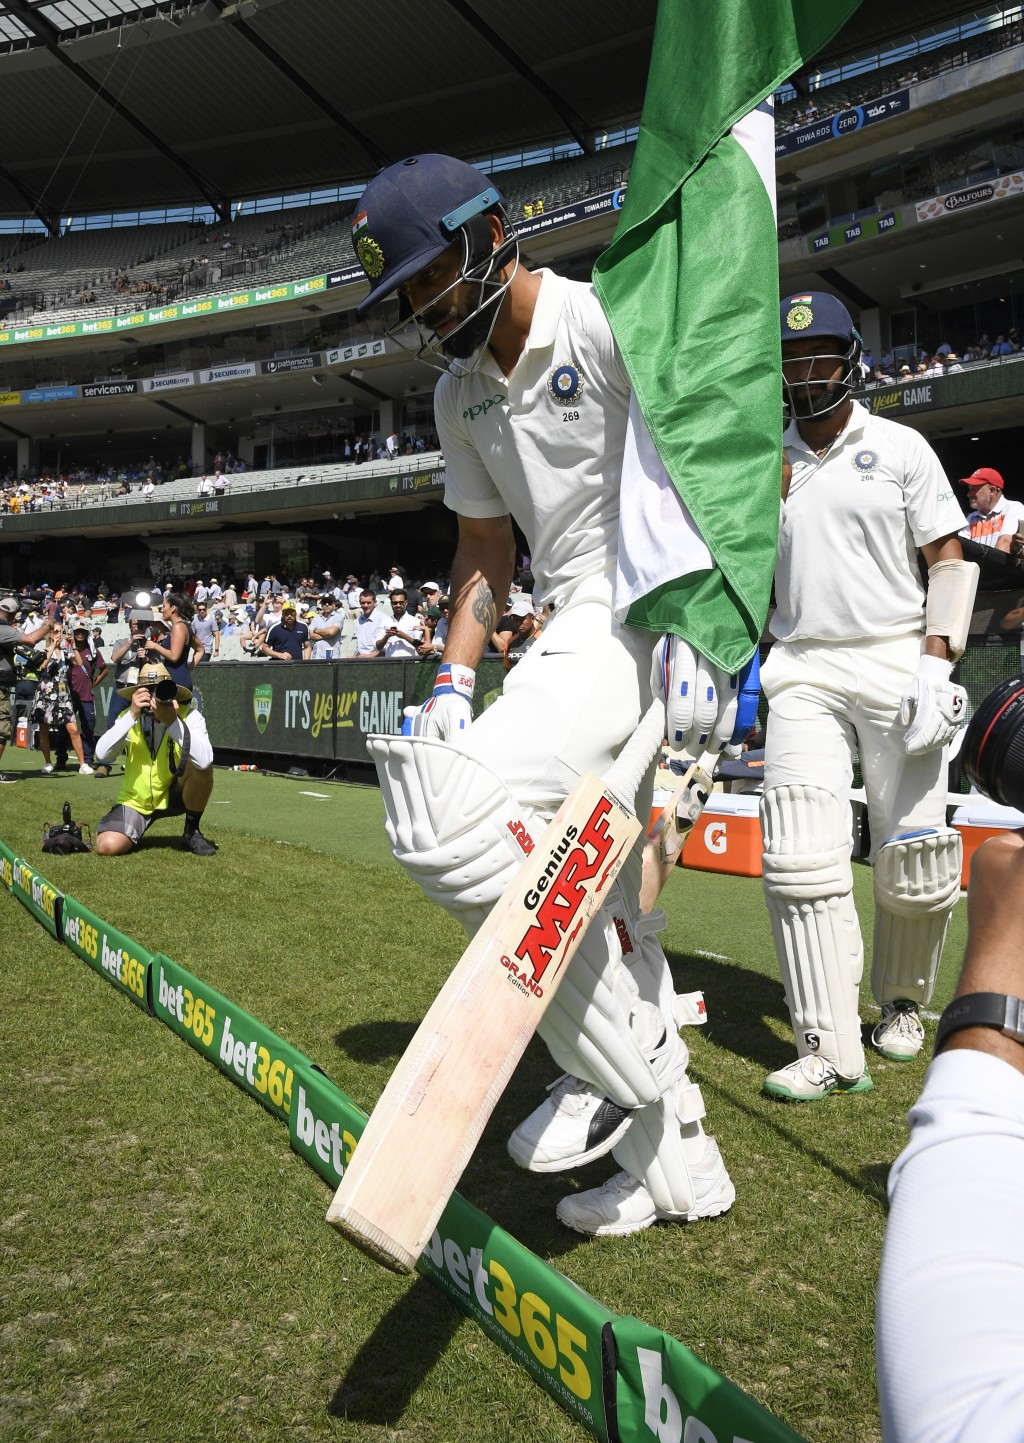 India's India's Virat Kohli, left, and Cheteshwar Pujara right enter the field before play on day two of the third cricket test between India and Aust